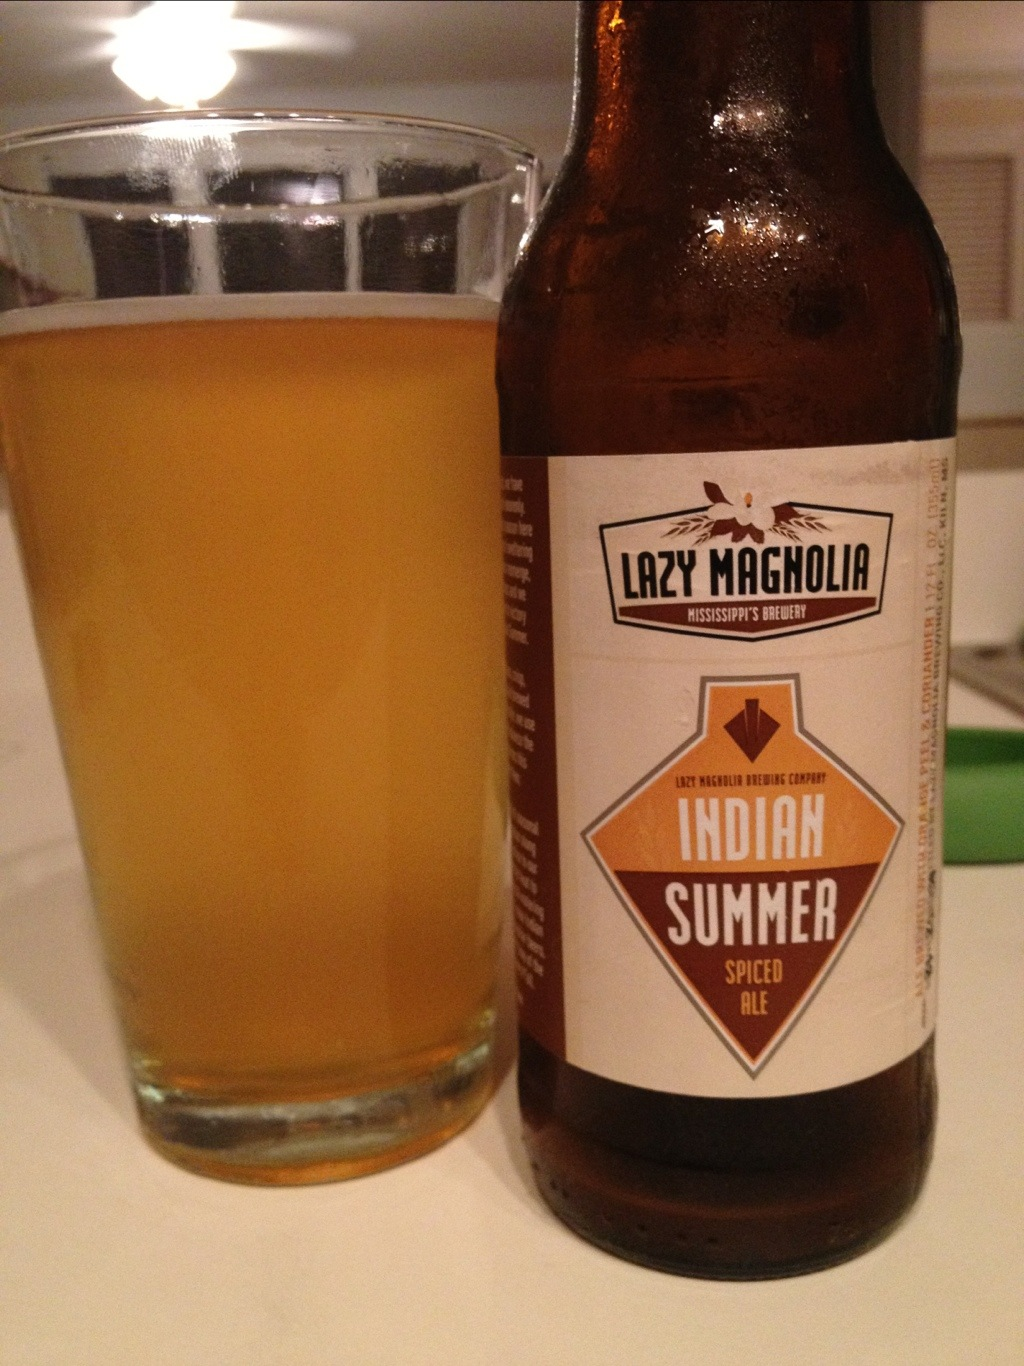 Lazy Magnolia - Indian Summer Spiced Ale